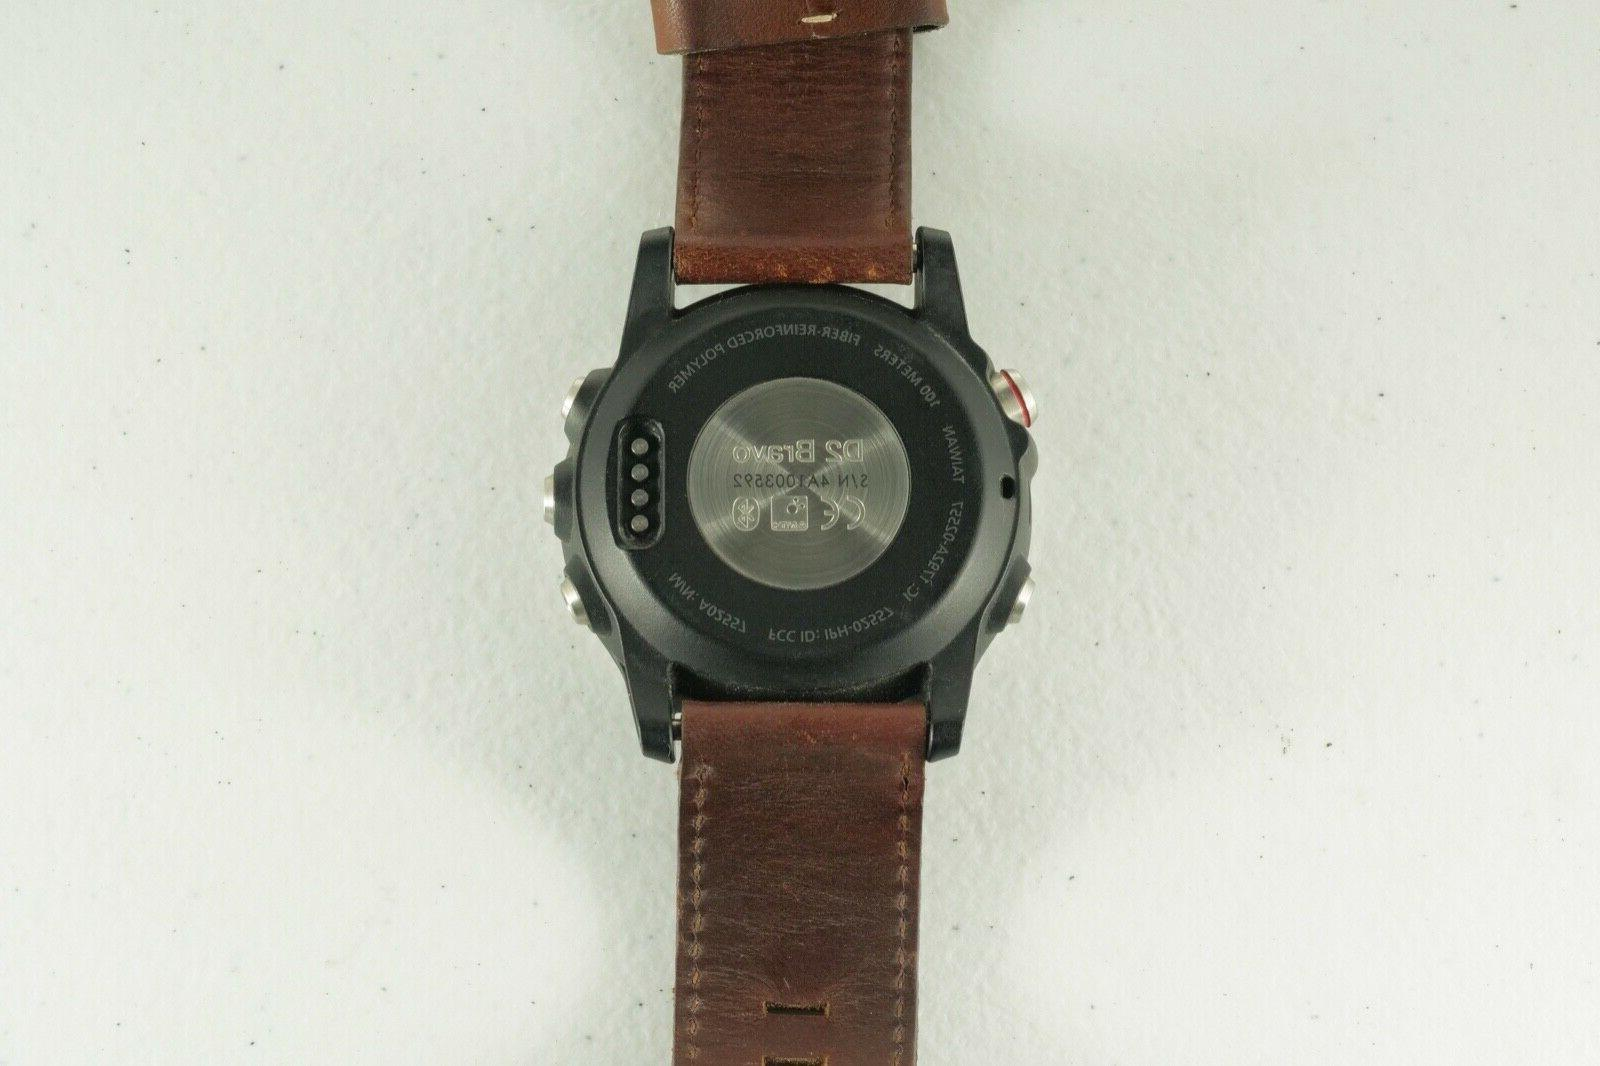 Garmin Pilot Watch w/ Leather Band Accessories Cond!